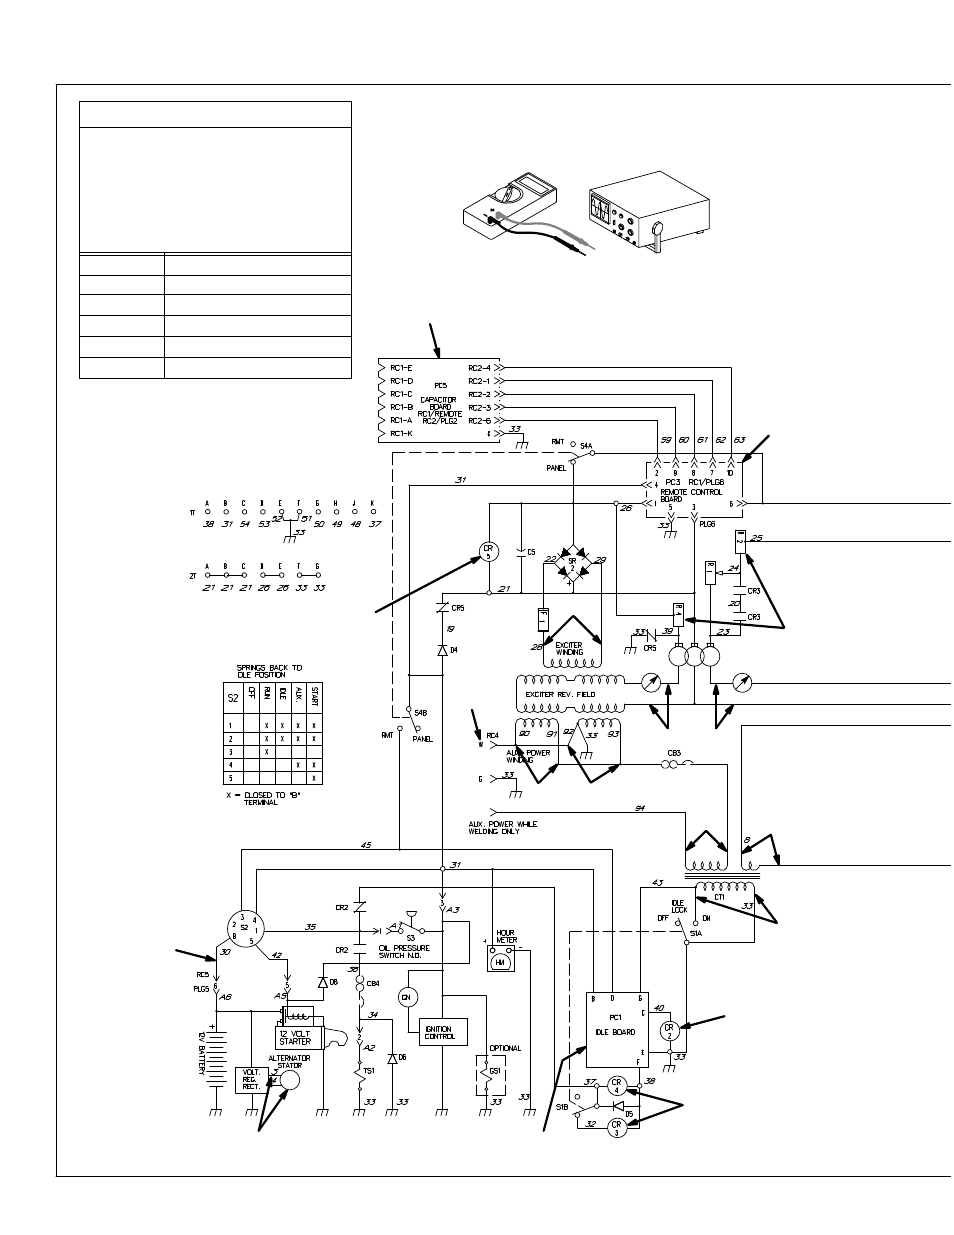 medium resolution of miller electric legend aead 200 le user manual page 24 68 troubleshooting circuit diagram for welding generator miller